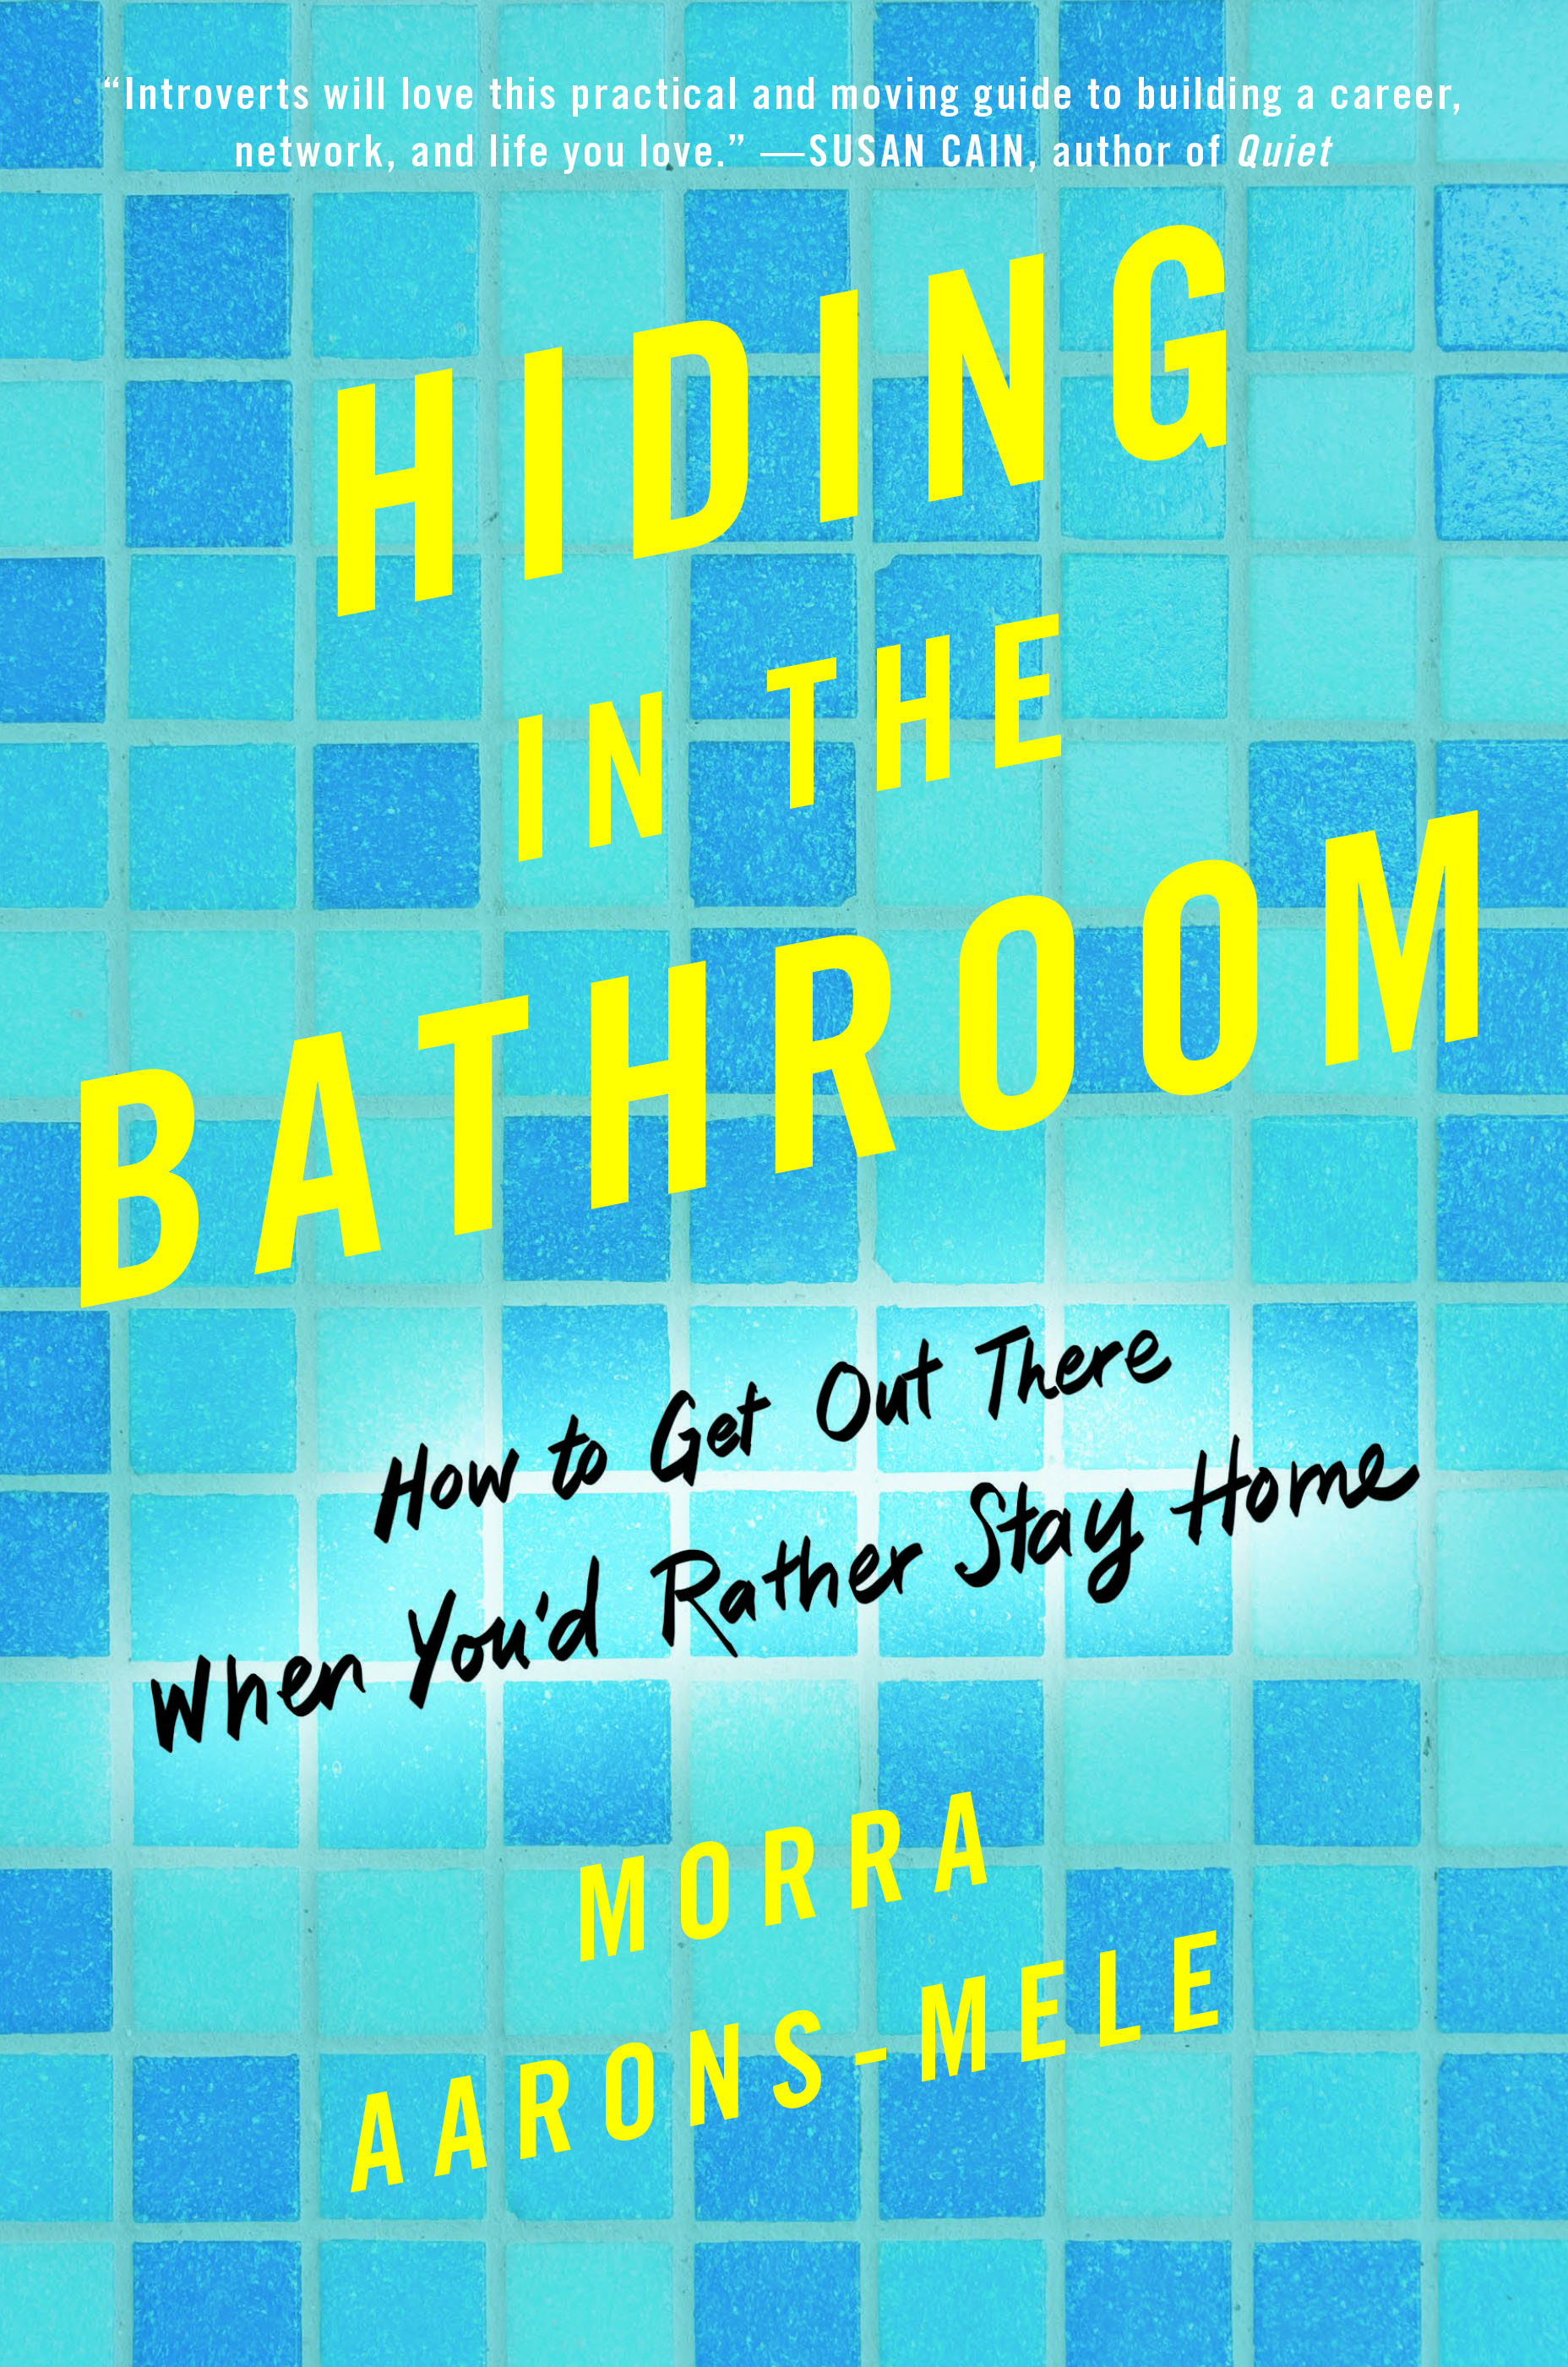 Hiding In the Bathroom by Morra Aarons-Mele